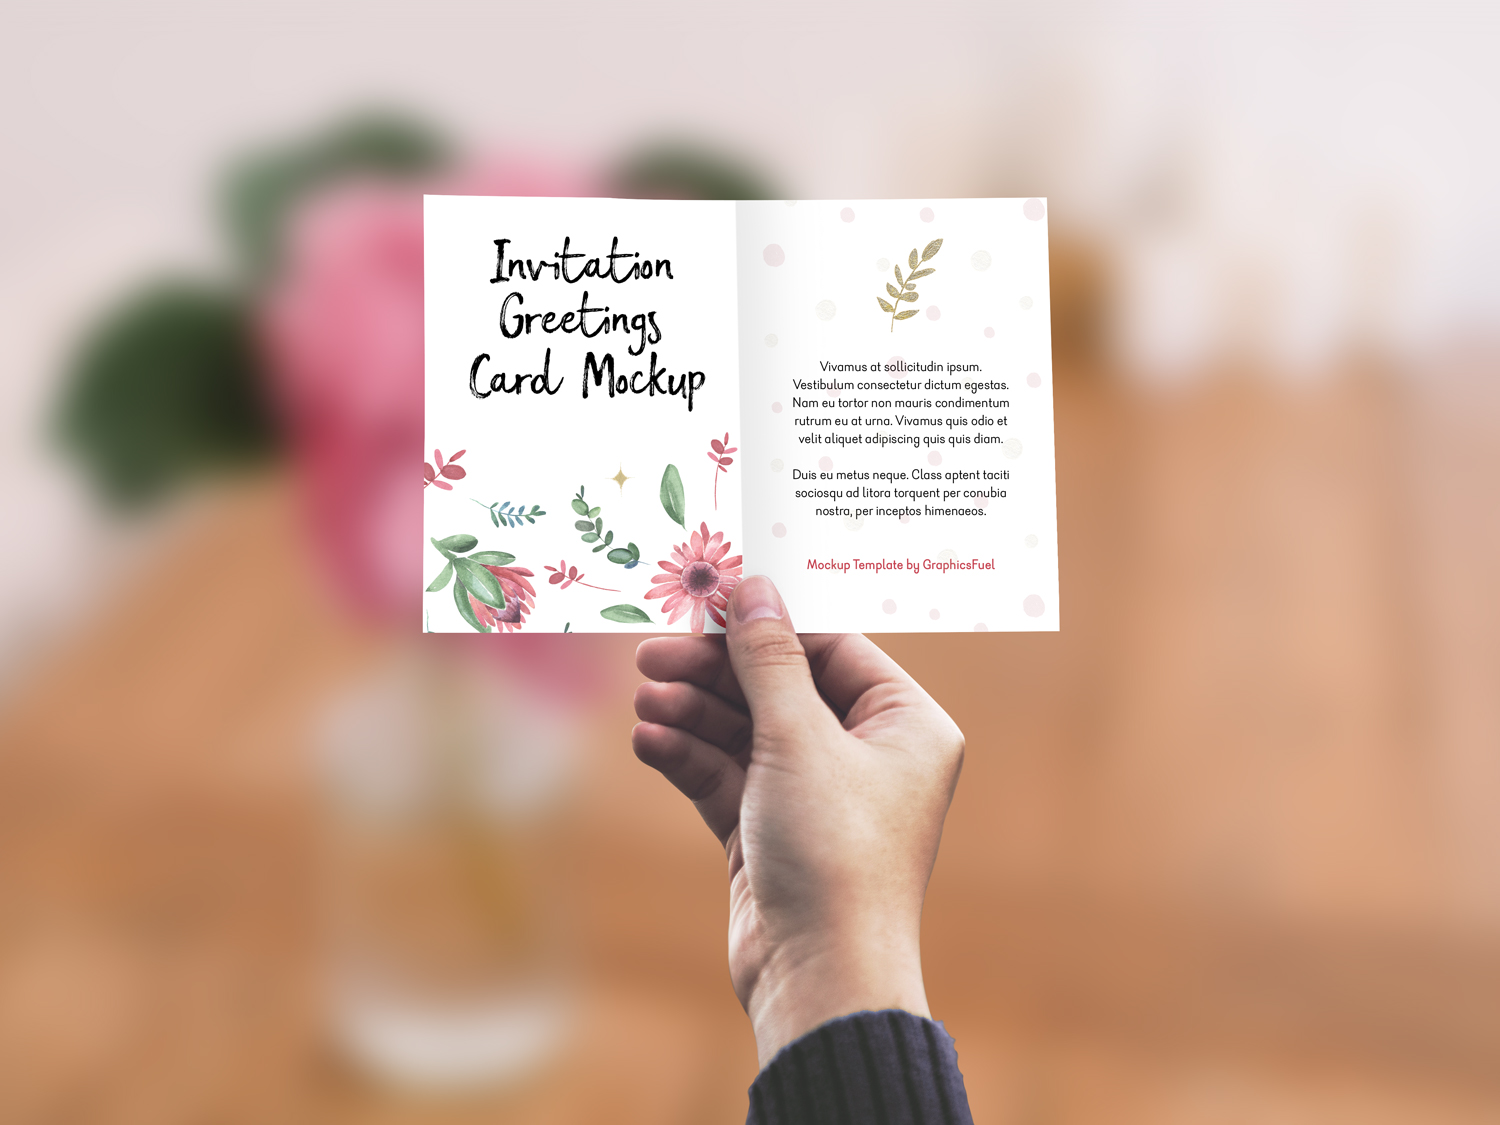 Invitation/Greeting Card in Hand Mockup PSD